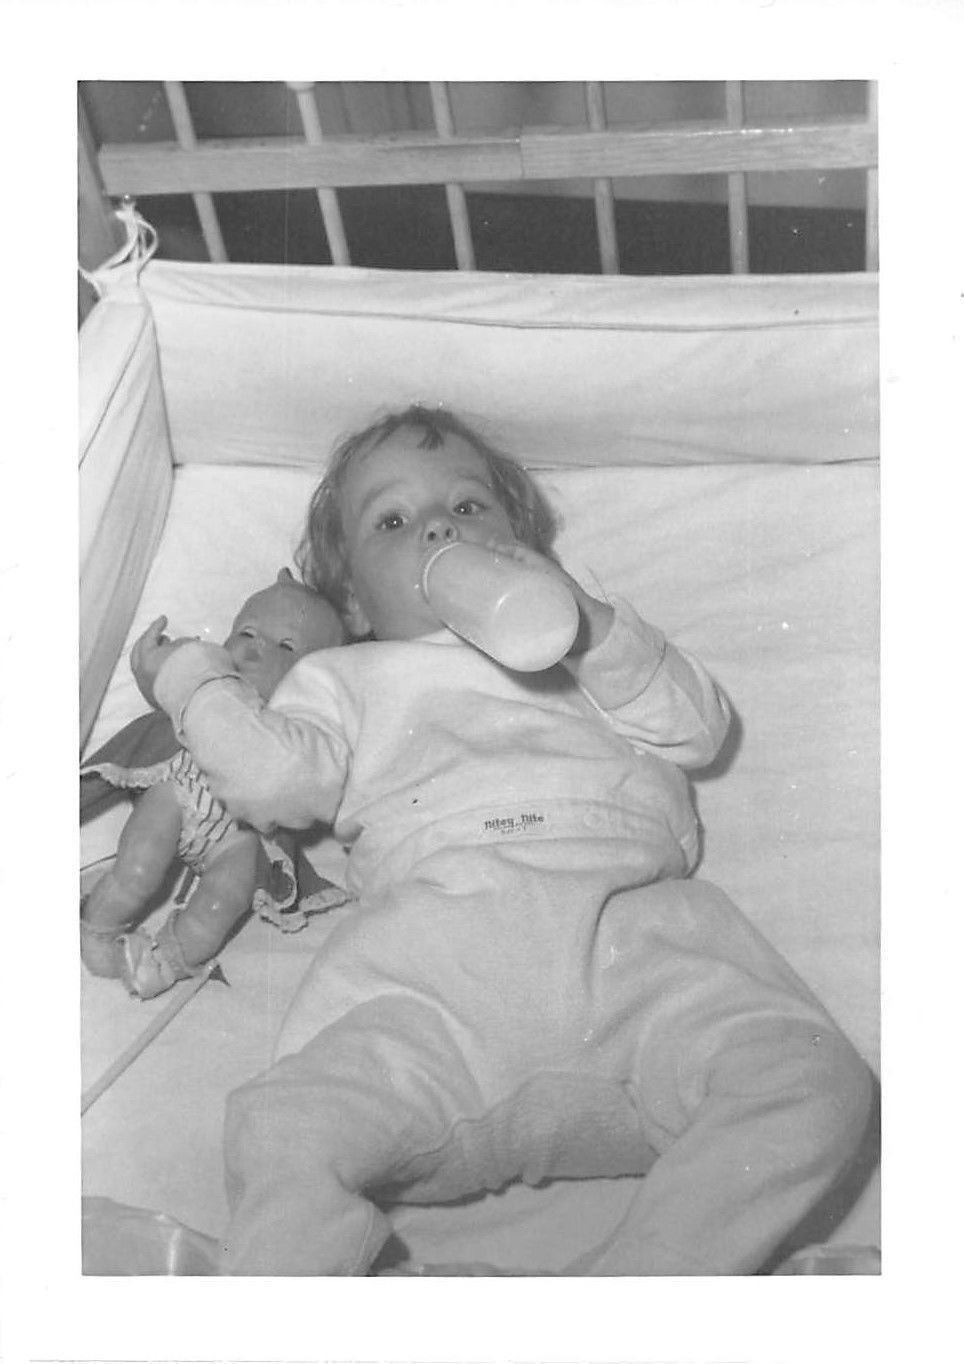 Plastic Baby Bottles And Cloth Diapers And Rubber Pants With